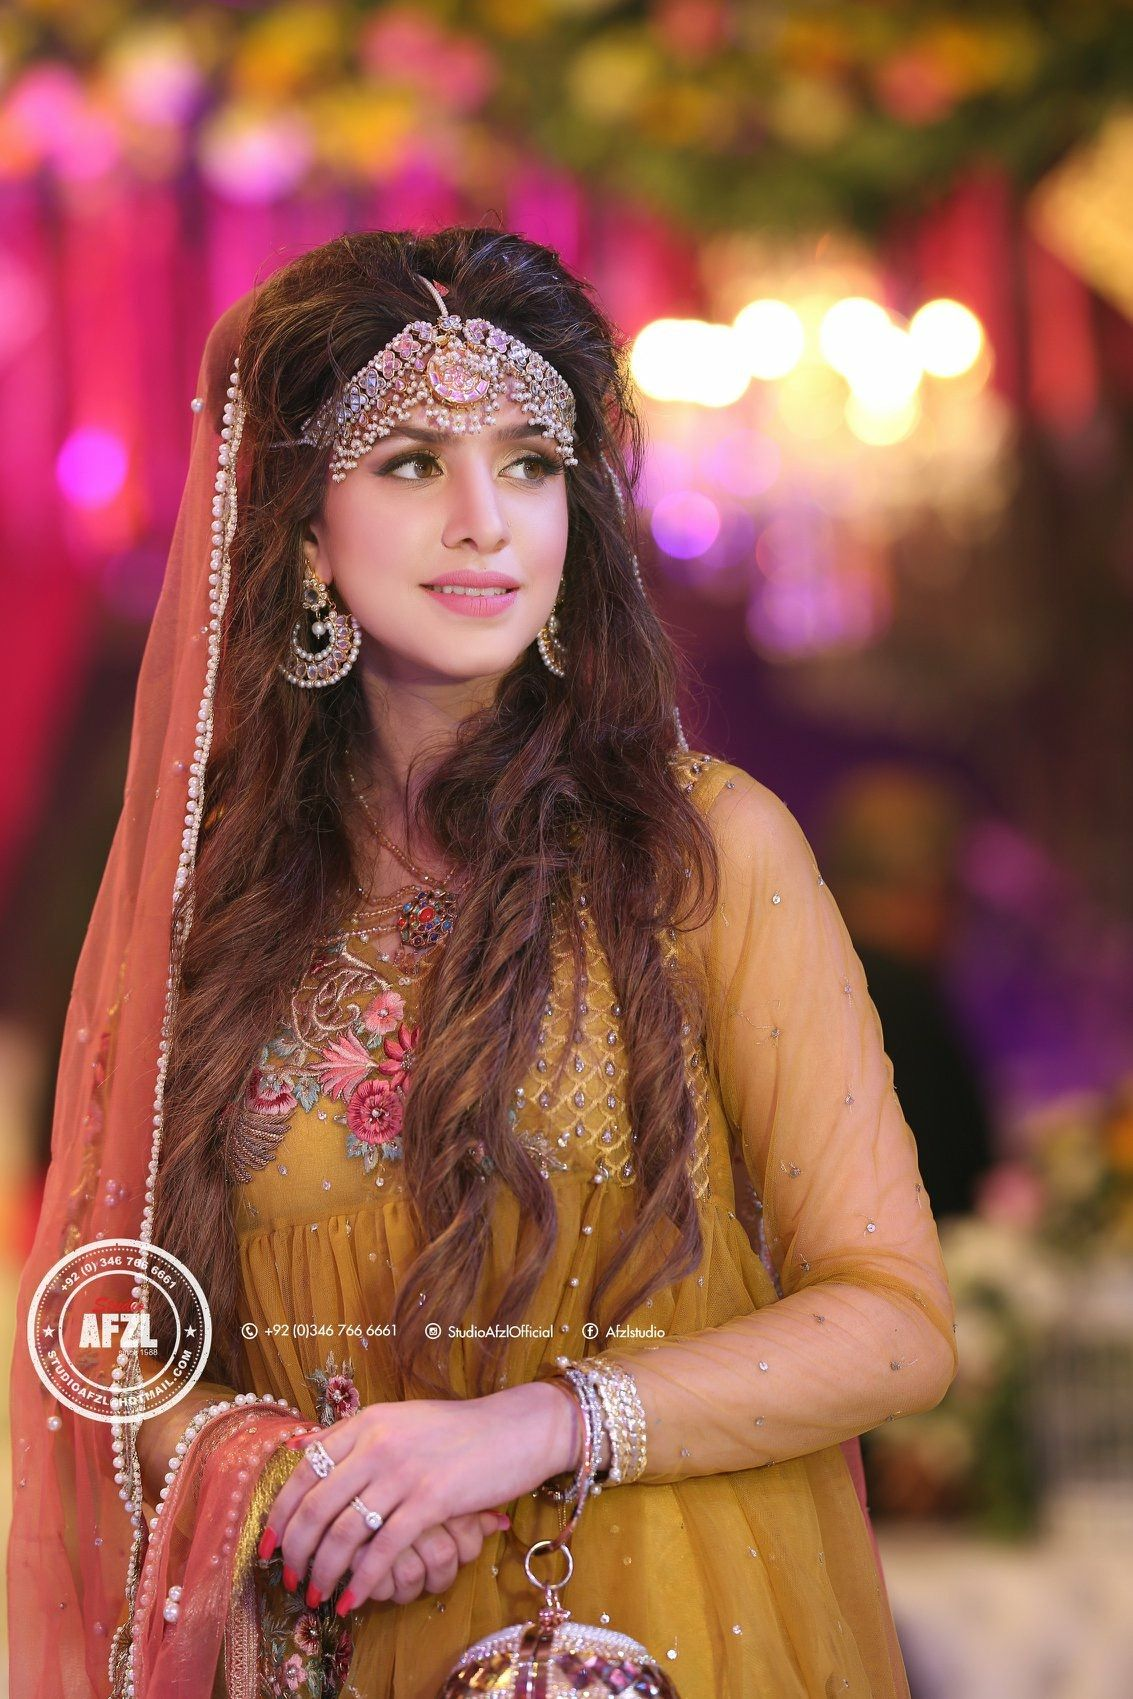 Mehndi Bride Pakistani Wedding Photography Wedding Picture Poses Pakistani Wedding